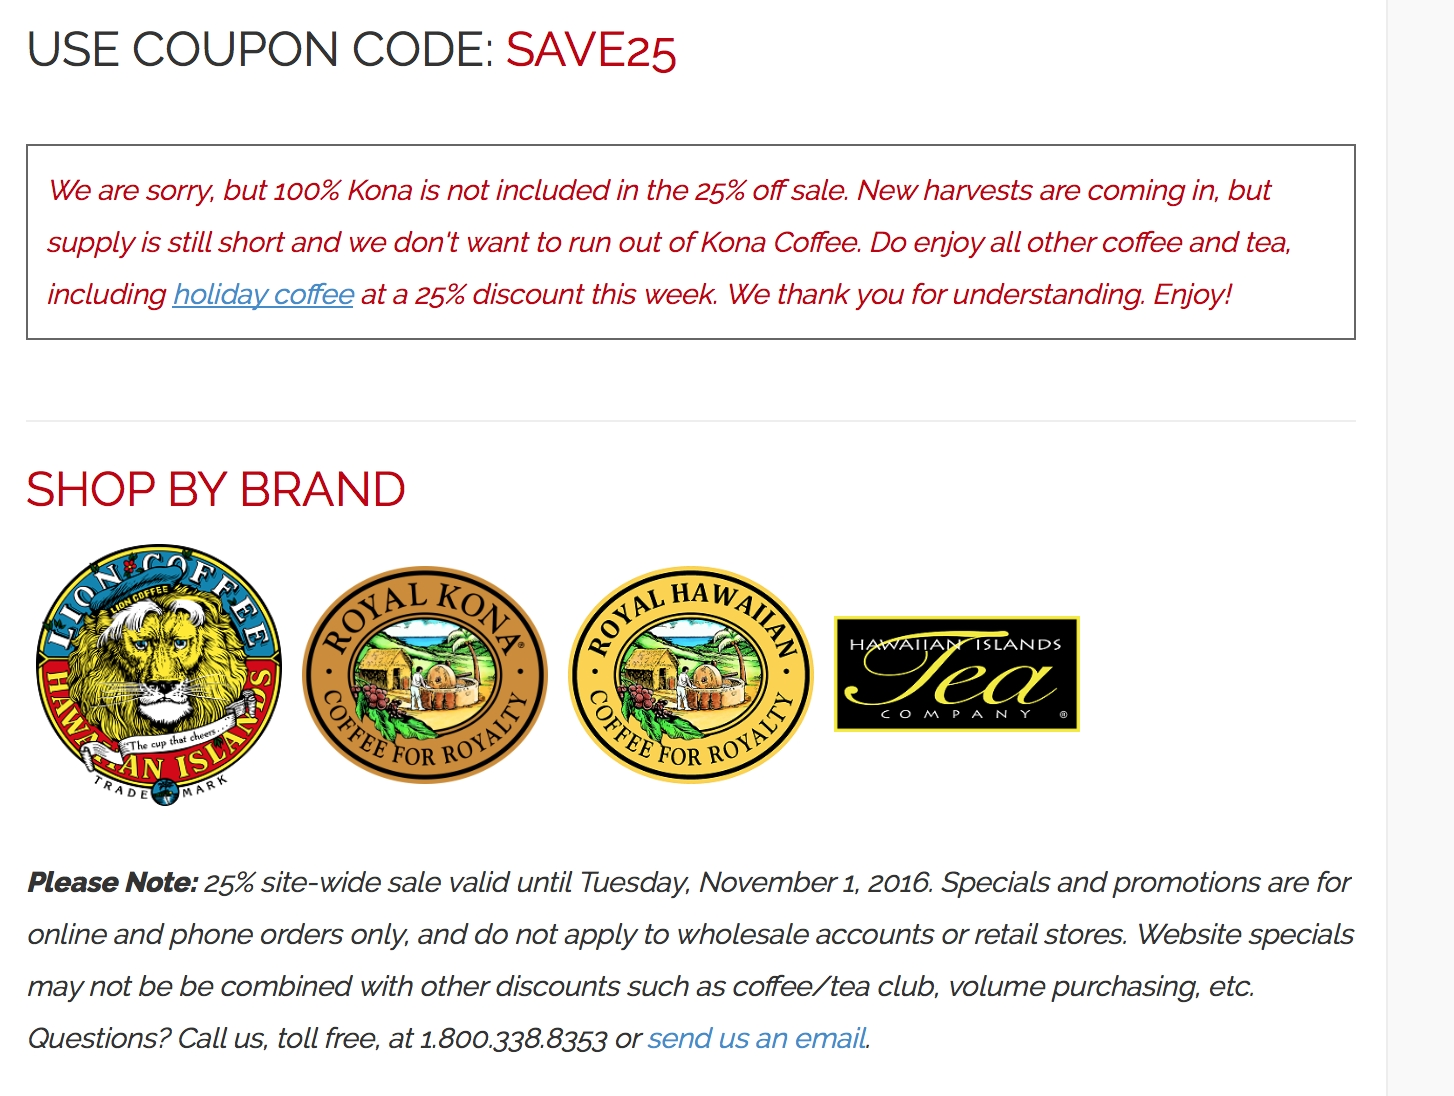 About Hawaii Coffee Company. There are 11 fantastic Hawaii Coffee Company money-off offers currently available at interactivebest.ml, including 7 promo codes and 4 deals. Enjoy amazing 30% Off savings by using these Hawaii Coffee Company coupon codes and promotions this December.